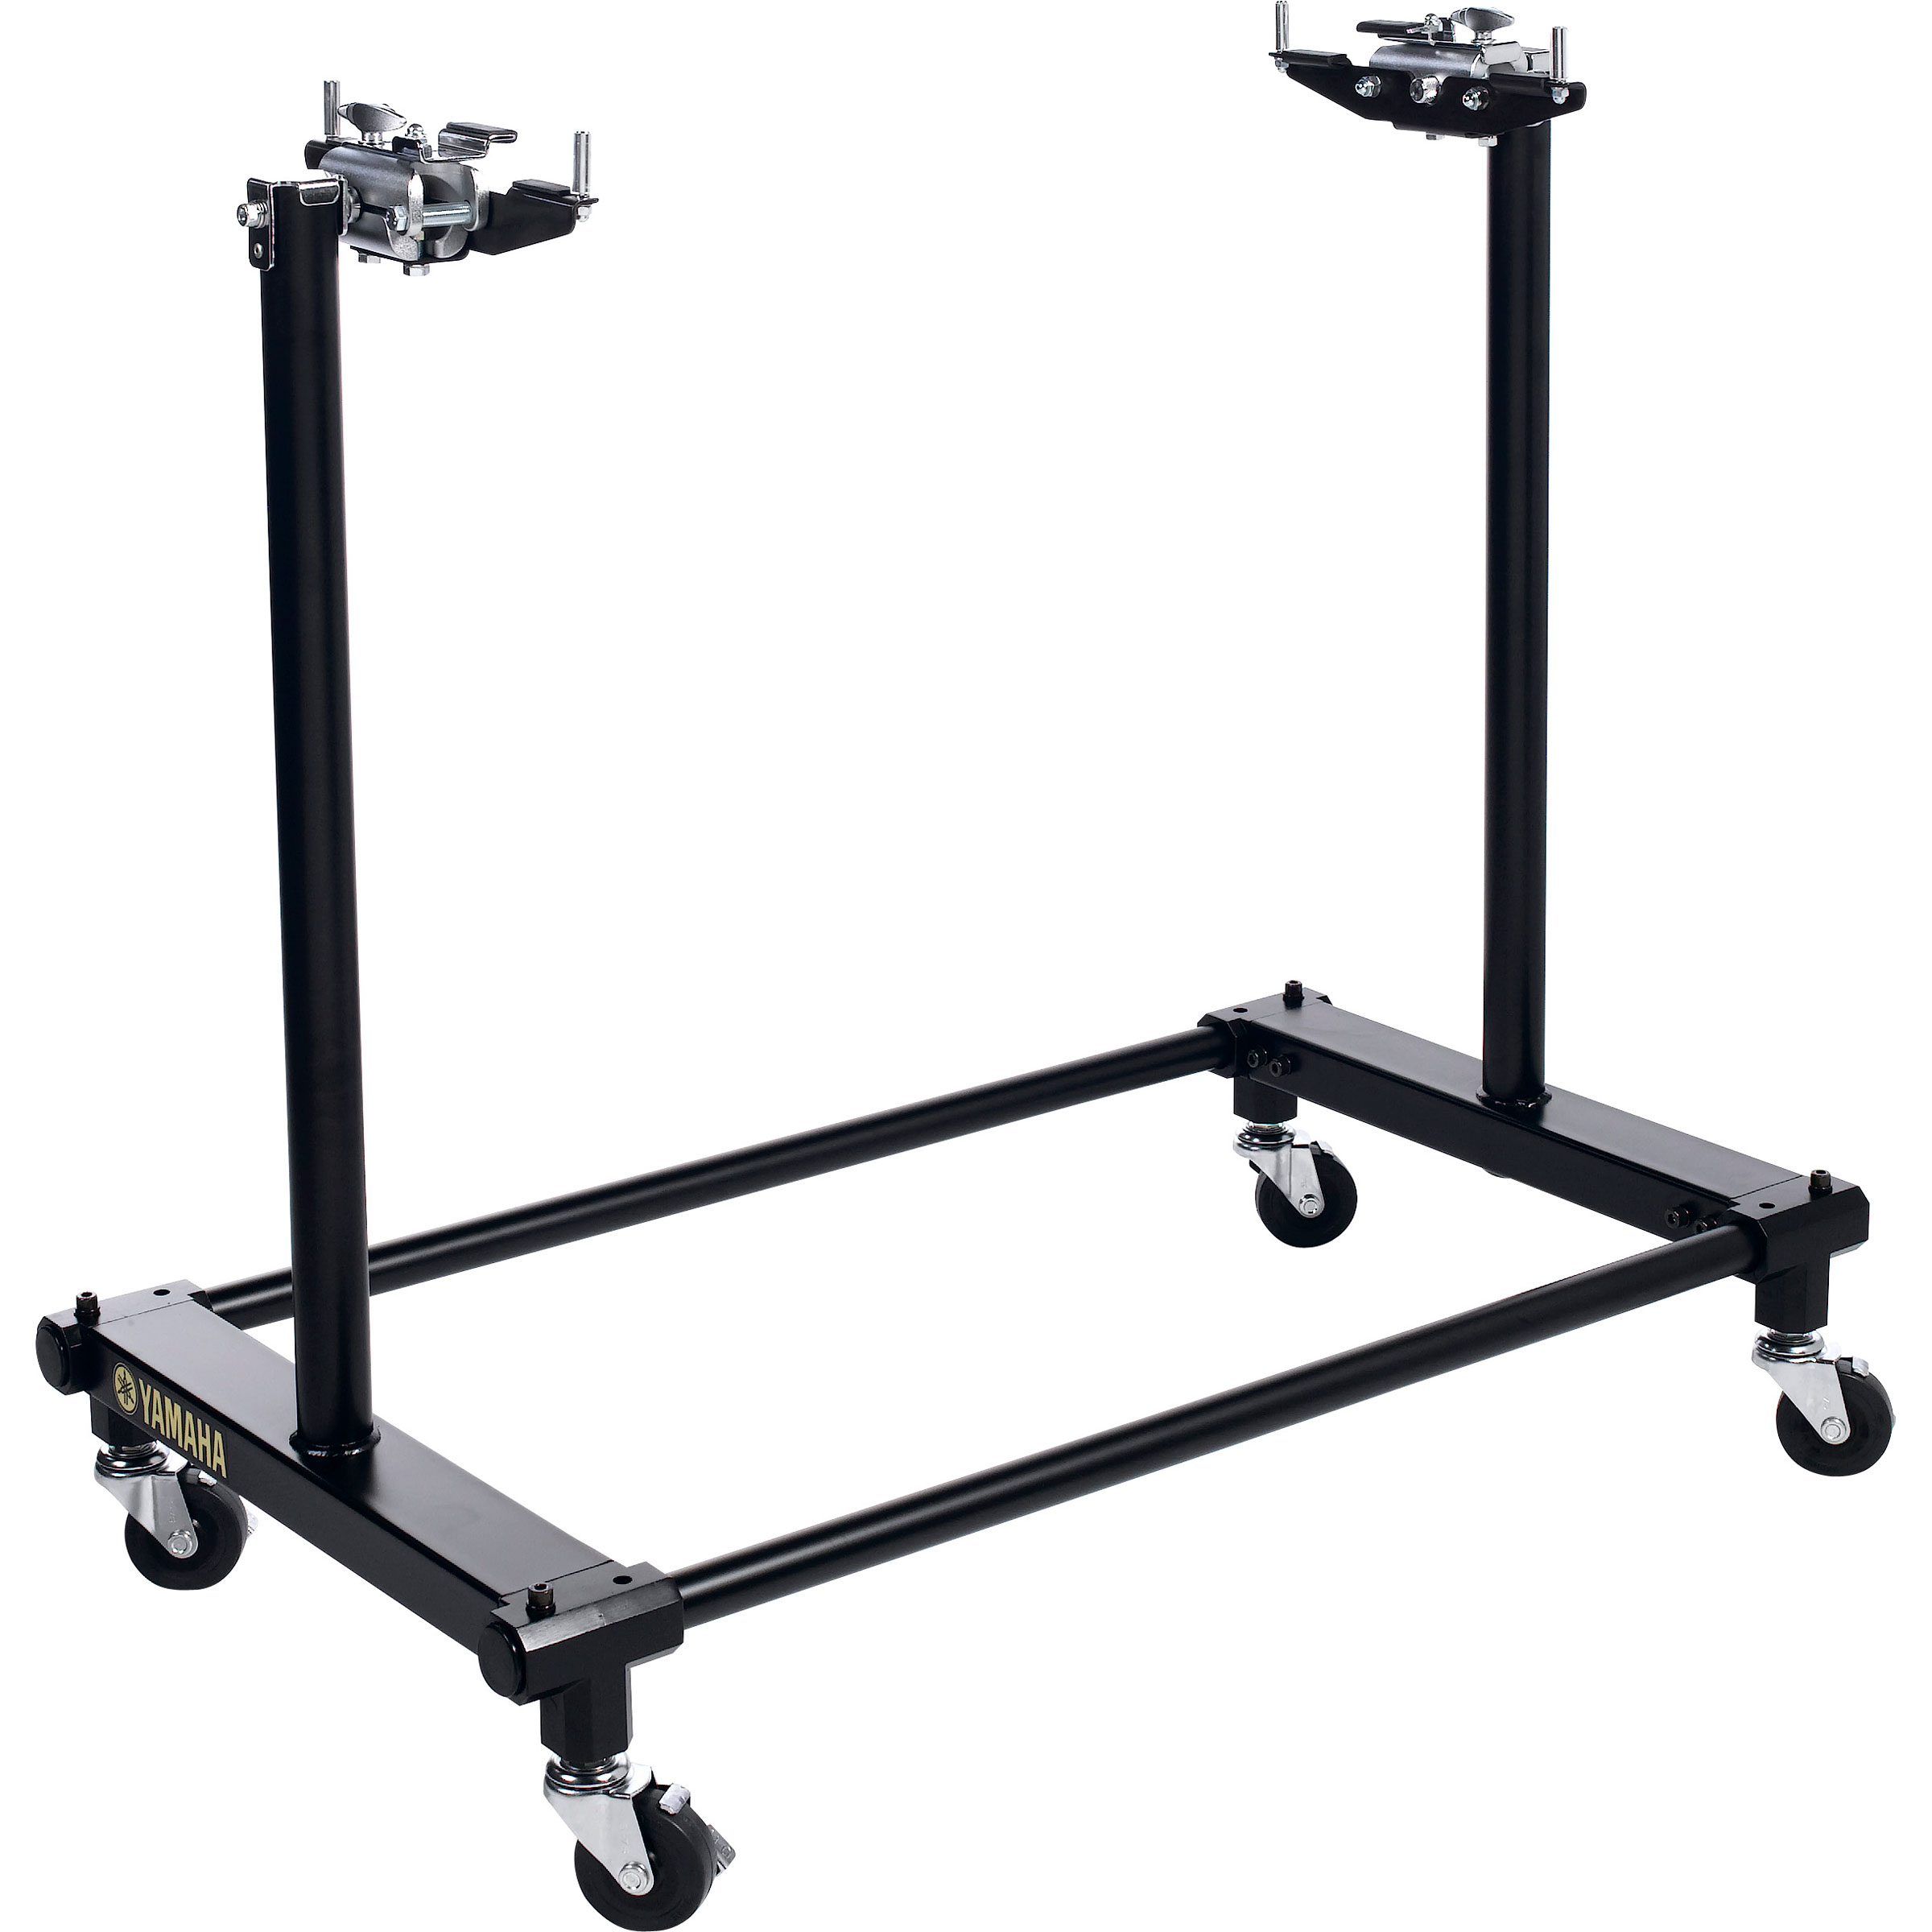 "Yamaha 7000 Series Tiltable Concert Bass Stand (36"" Drums)"